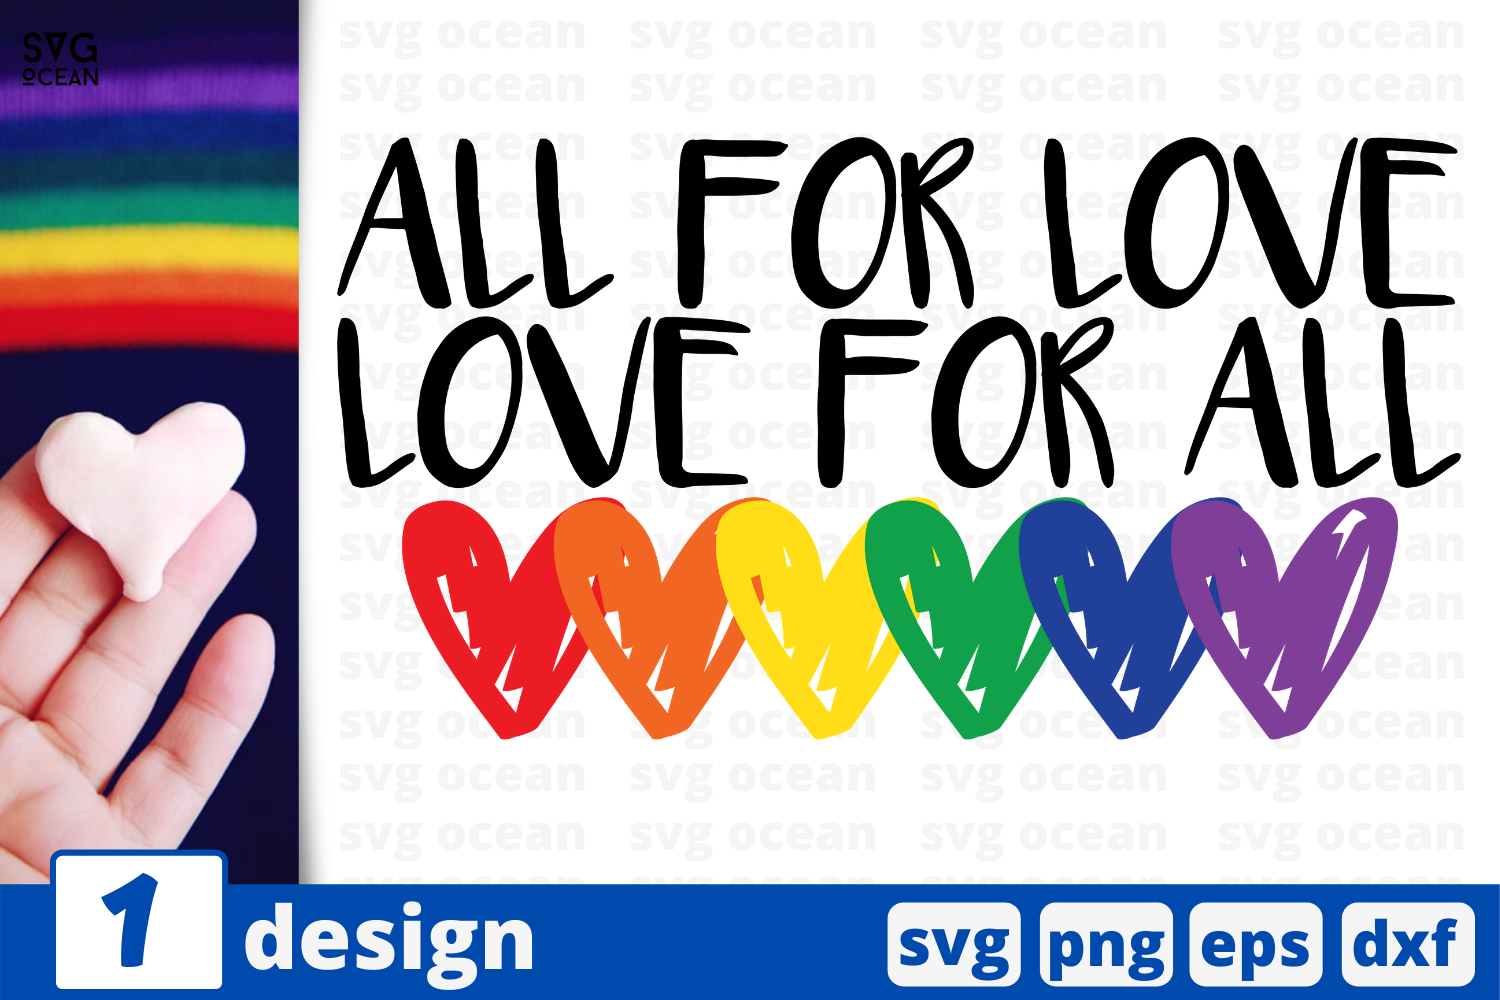 Download Free All For Love Graphic By Svgocean Creative Fabrica for Cricut Explore, Silhouette and other cutting machines.